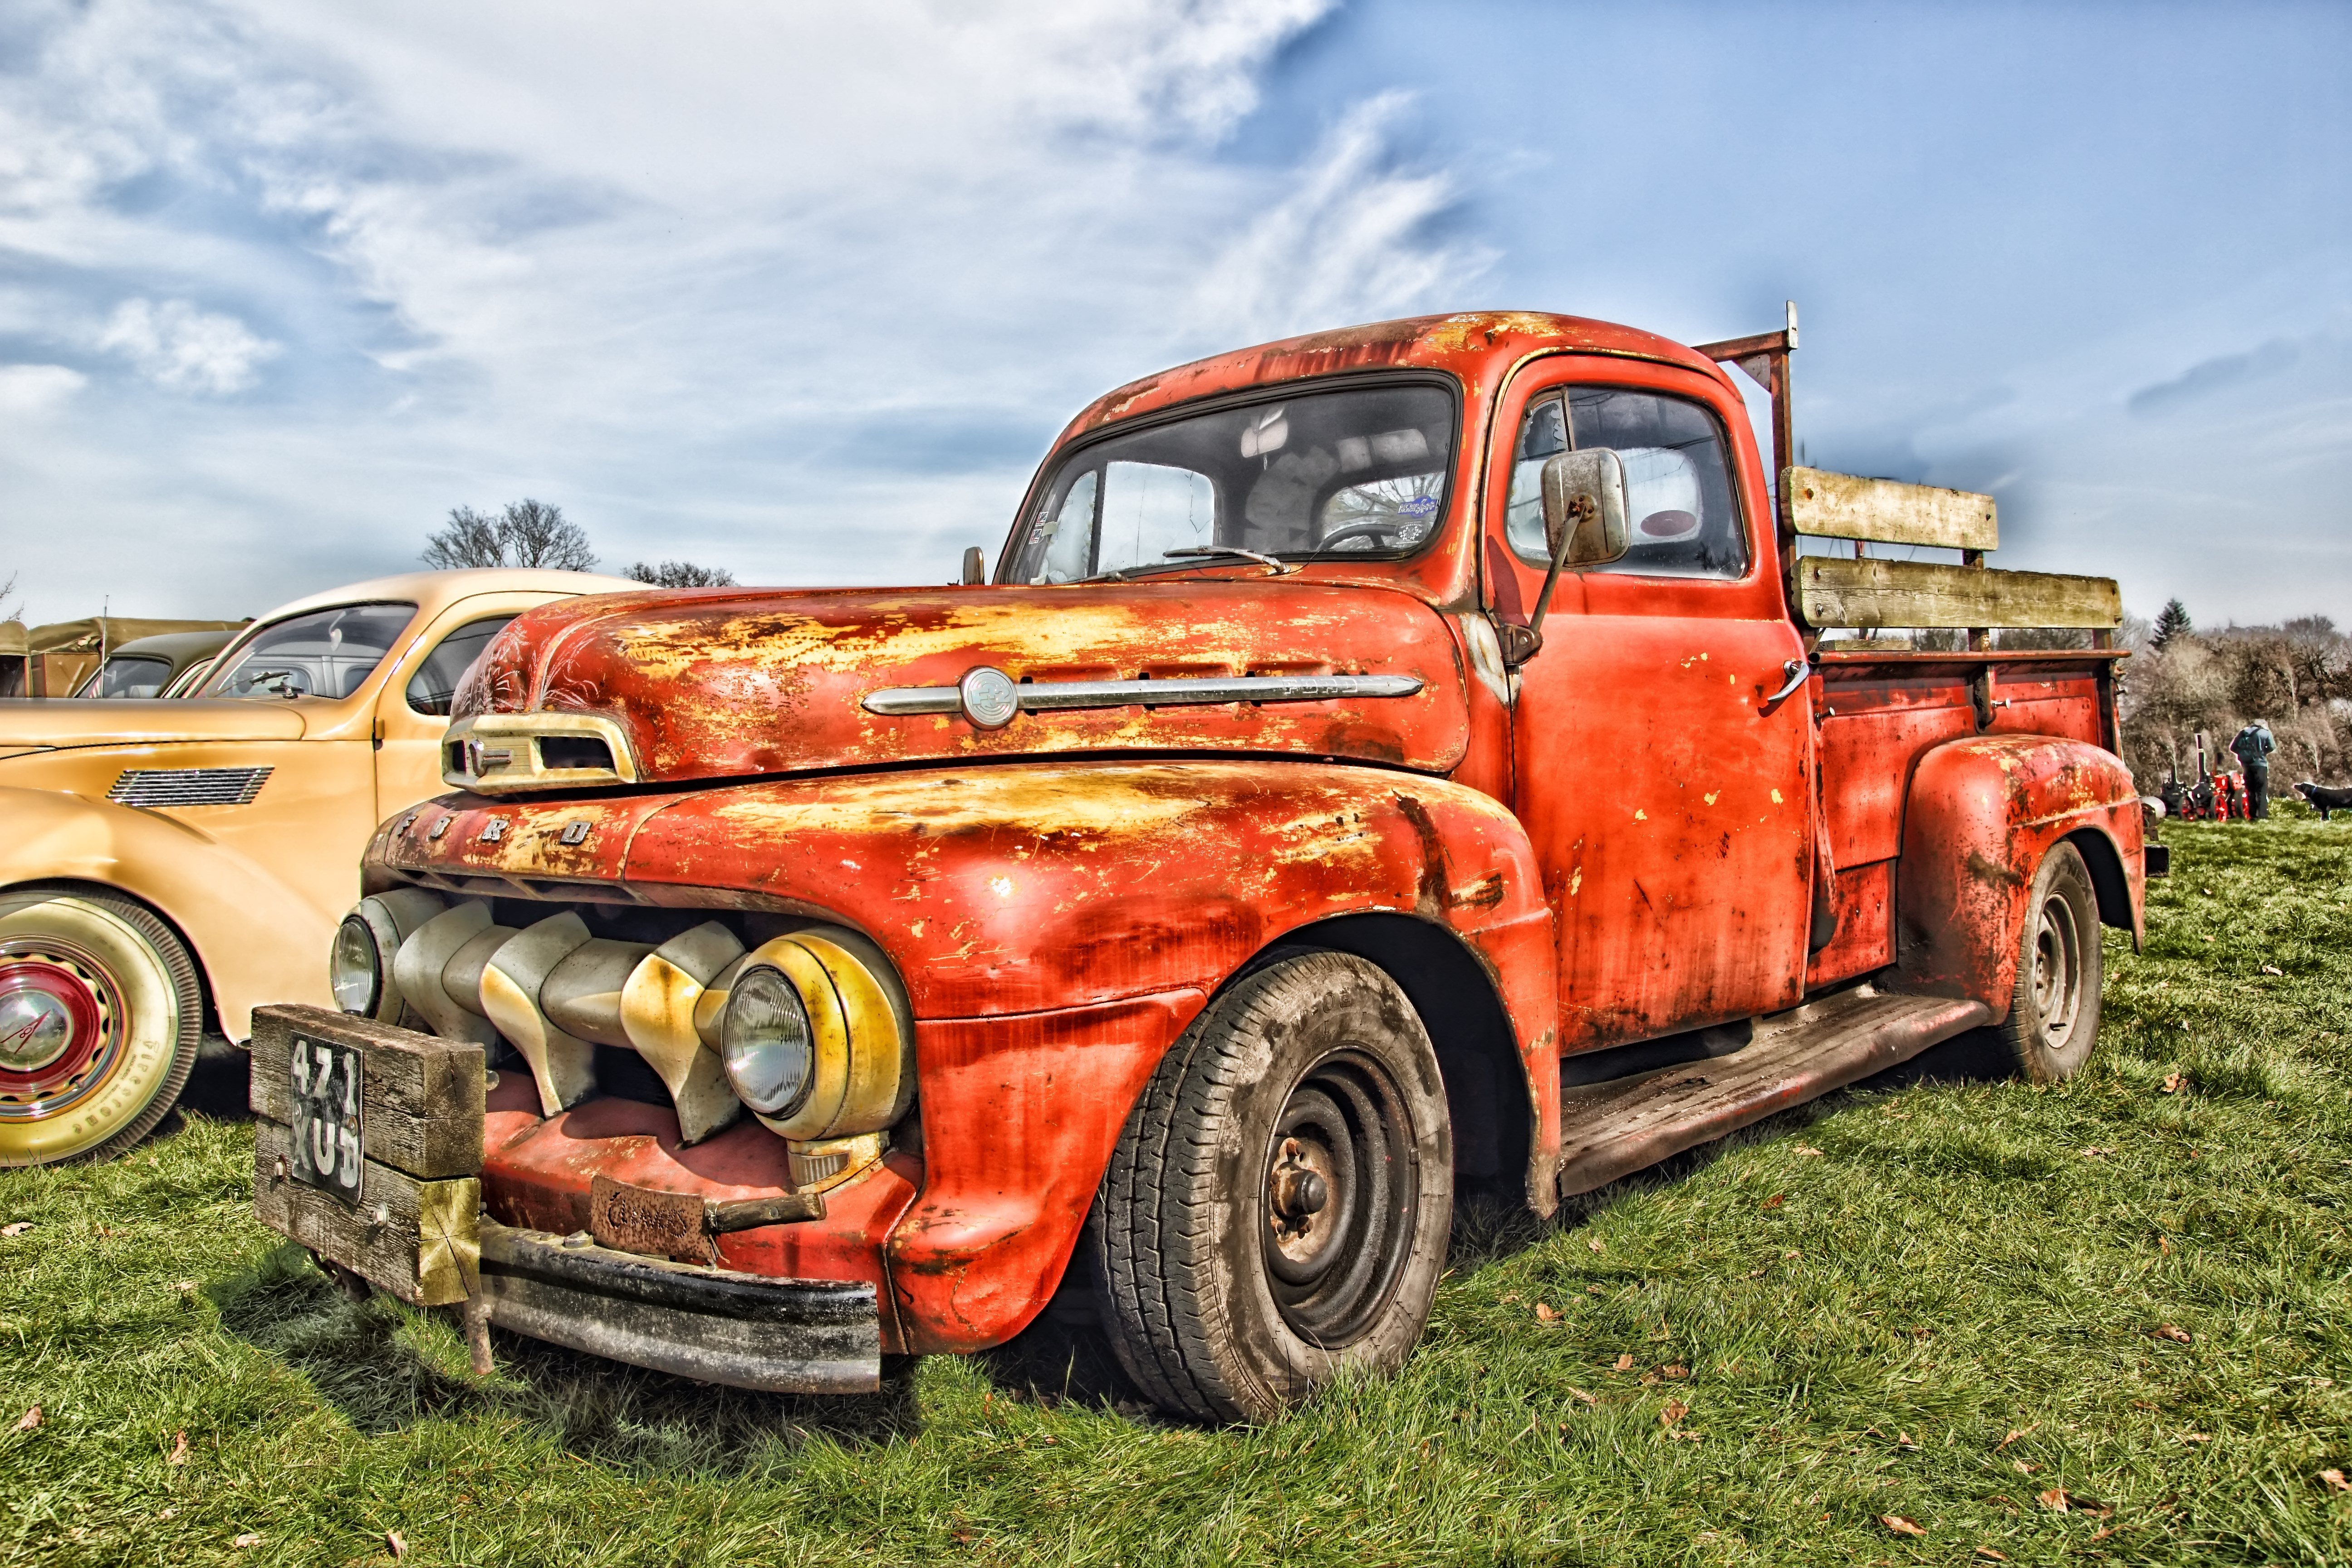 Rusty Old Truck wallpaper background 5184x3456